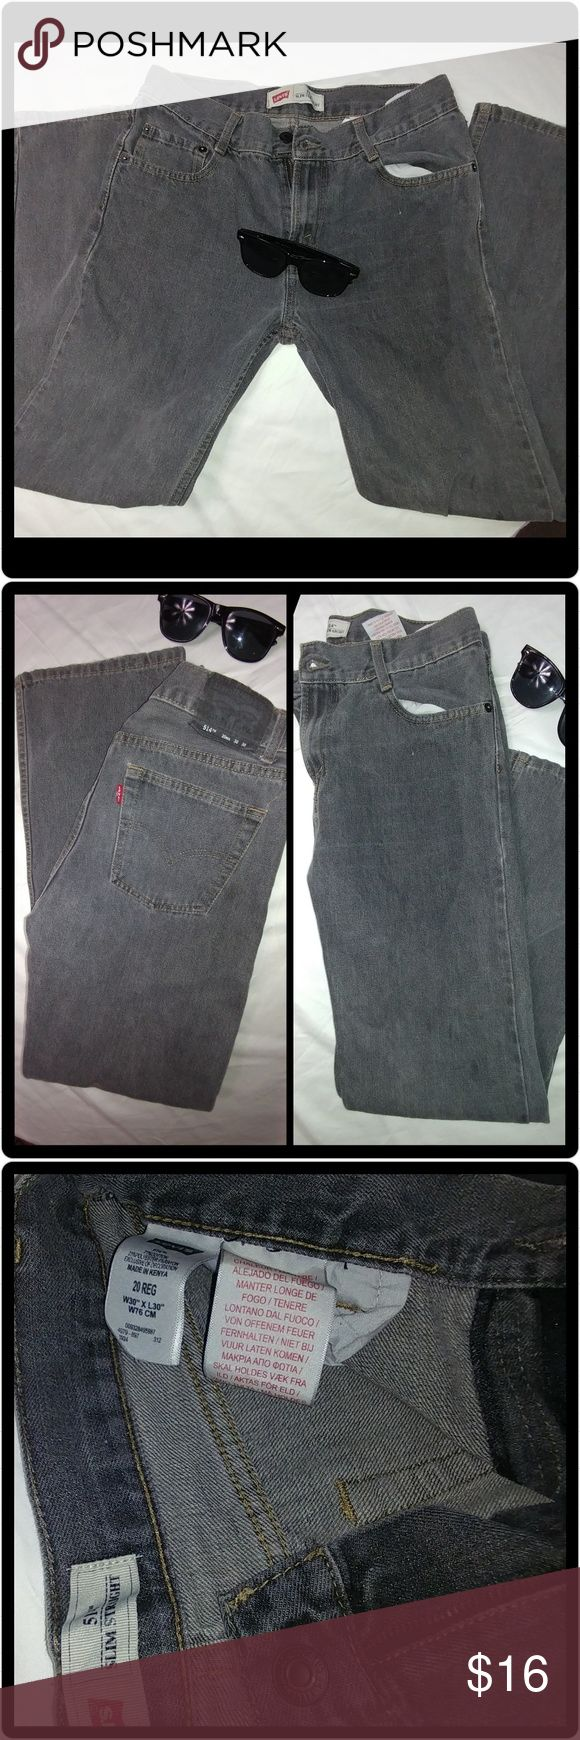 514 slim straight Levi's jean 514 slim straight Levi's jean. Worn with love. 514 Levi's jean. Normal wear and tear. Size 30x 30. Message me for more details, offers are personalized bundles. Thank you for looking.  #jean #used #grey #black #levisjeans #slimstraight #size30by30 #backtoschool Levi's Jeans Slim Straight